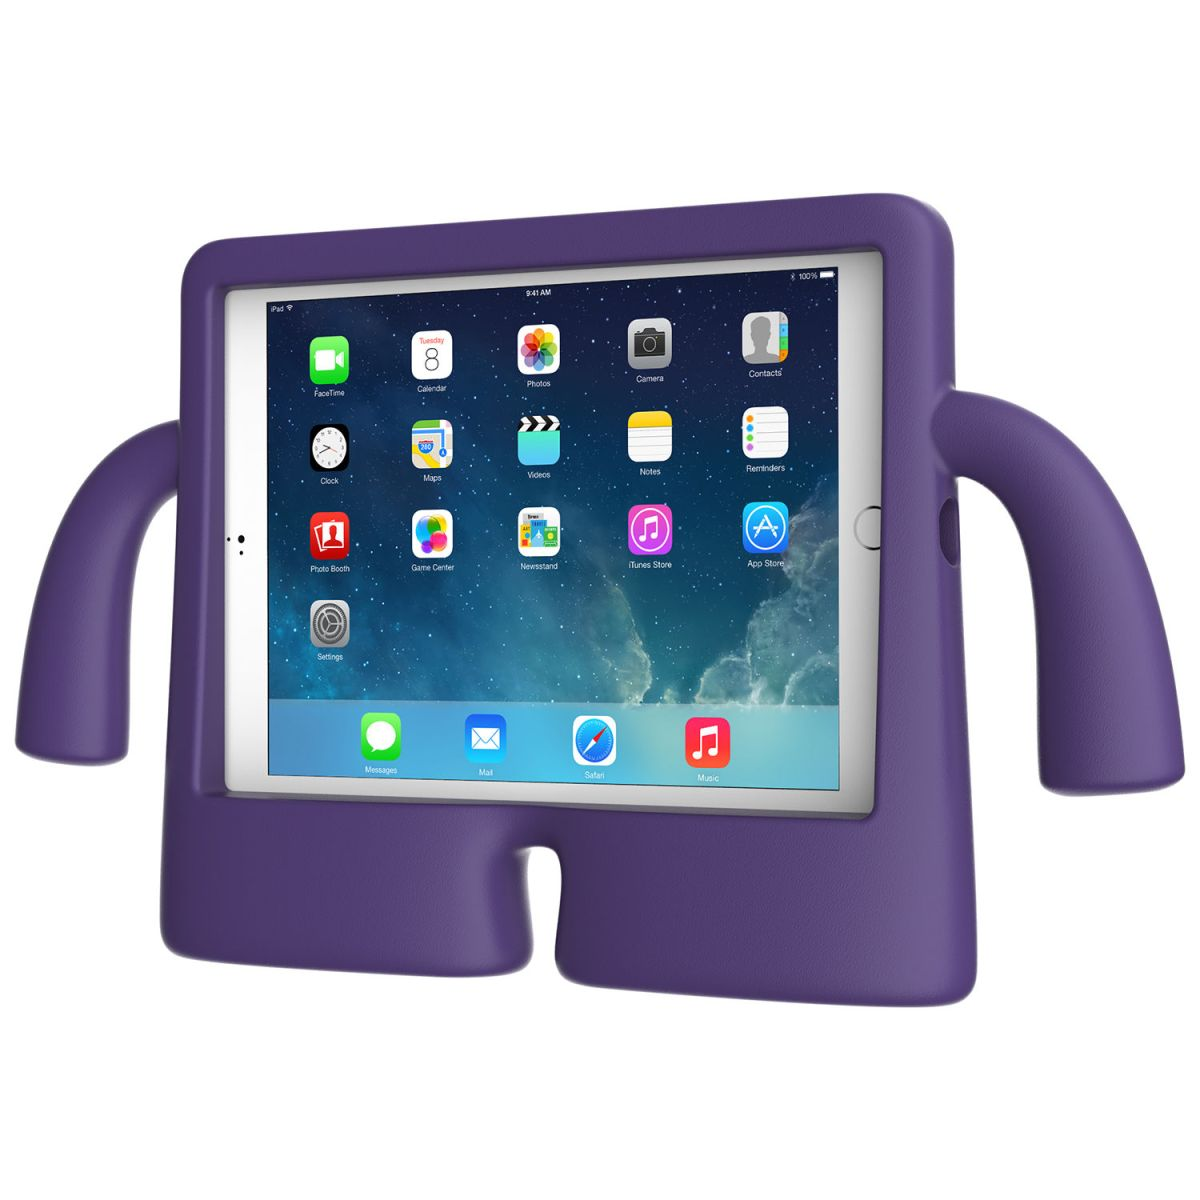 Carcasa iPad Air, iPad Air 2 iGuy - Grape Purple